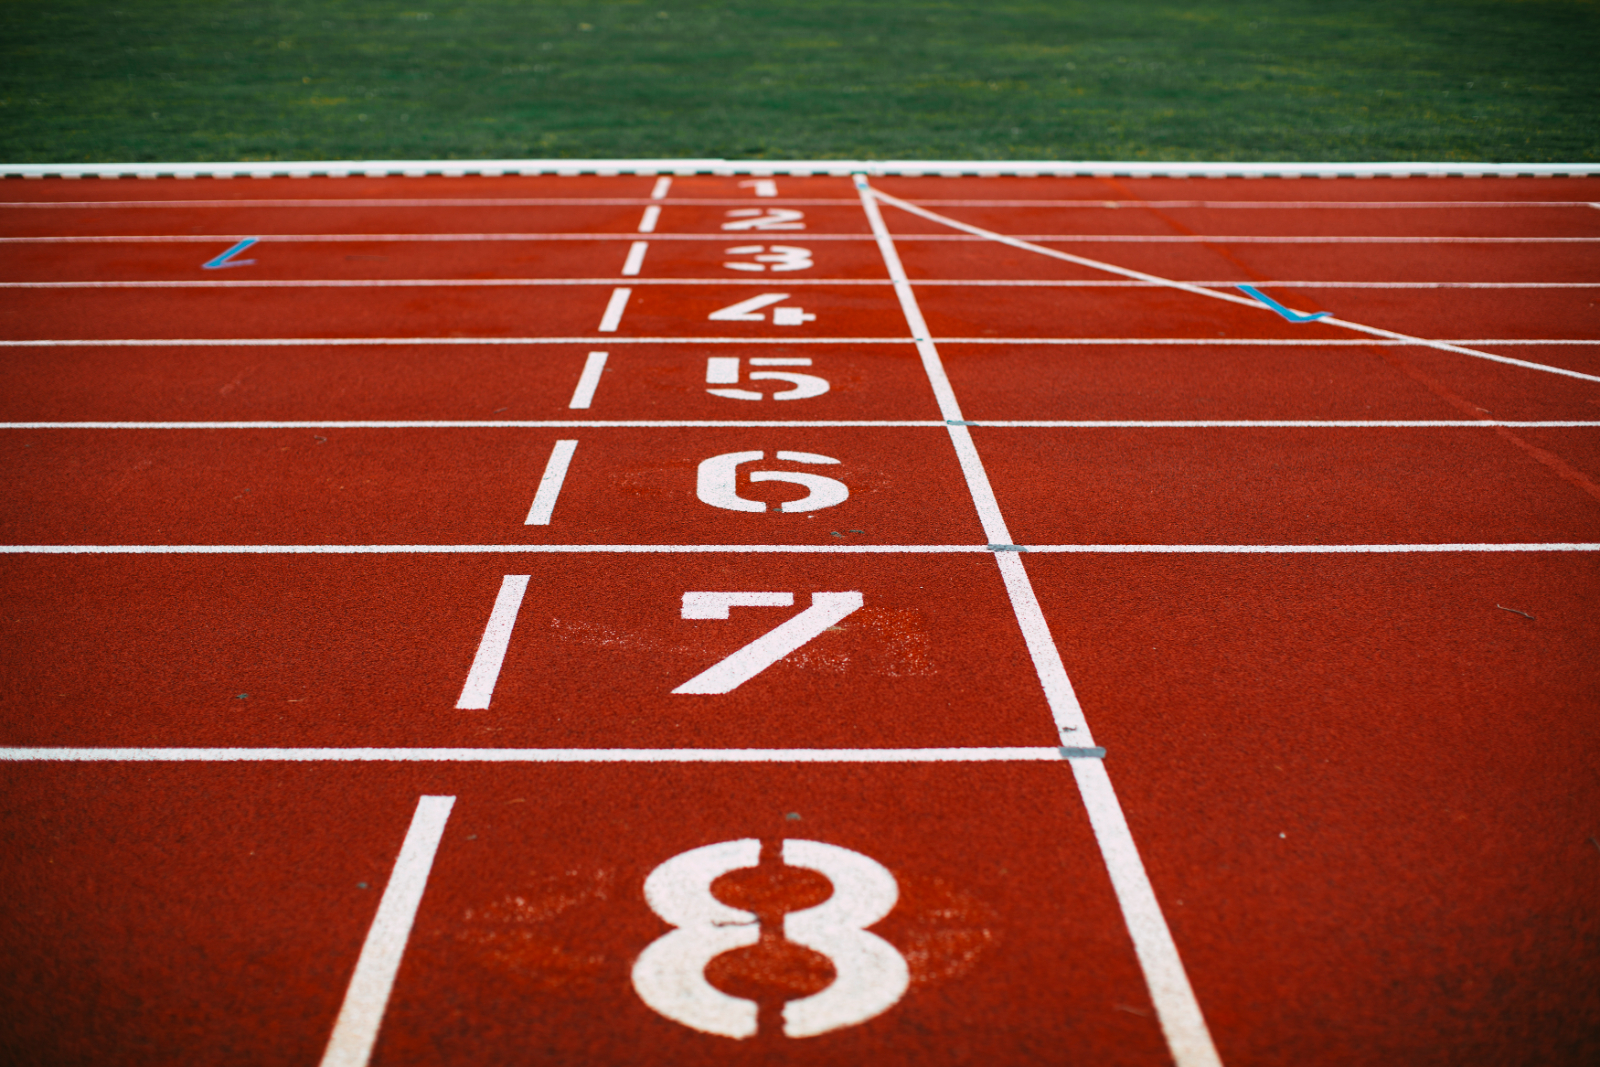 JV Track Meet Information: Friday May 14th @ Wenatchee High School